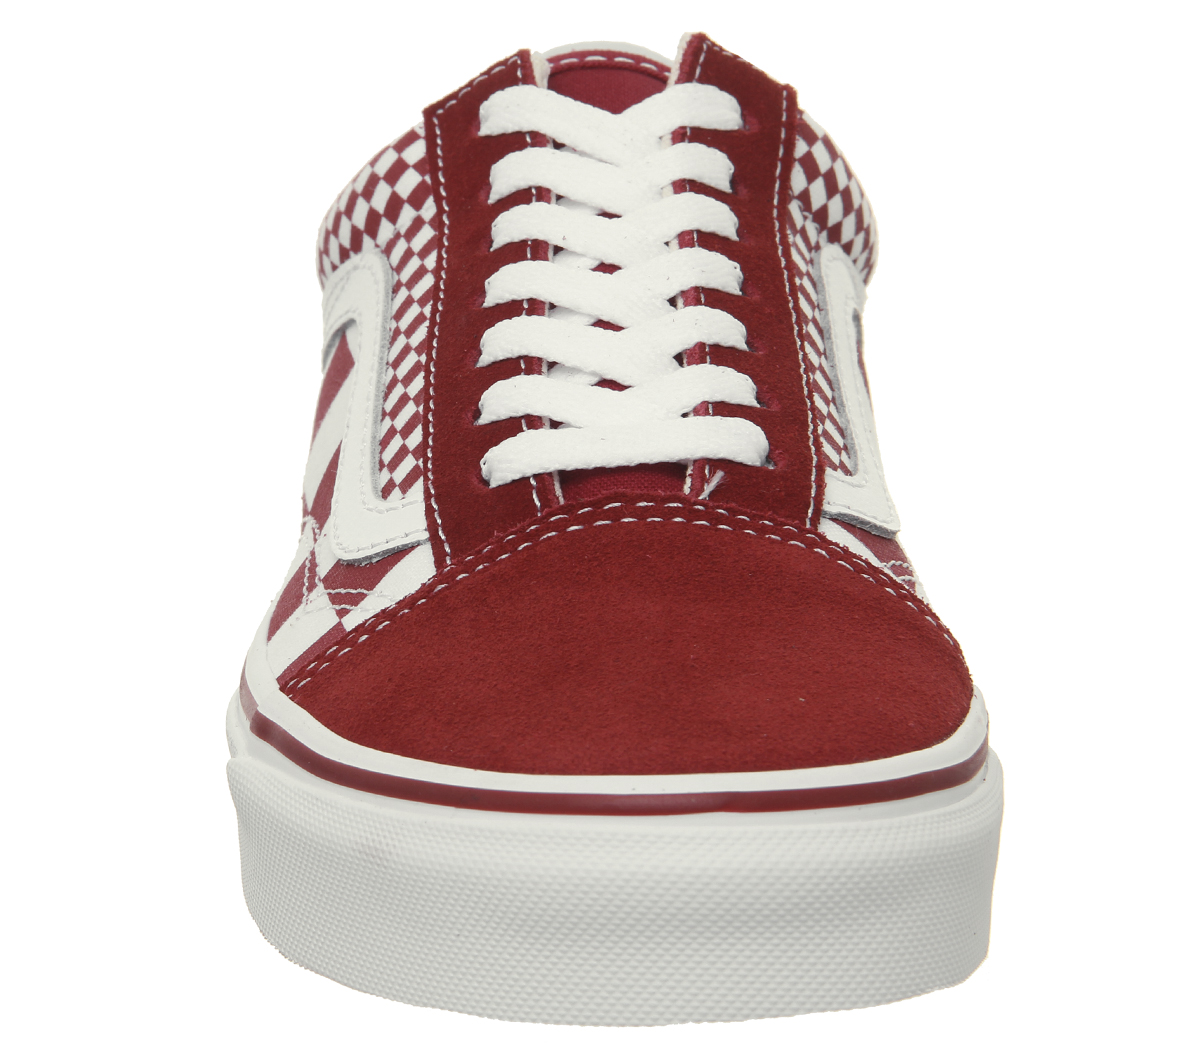 a64d8201ed8 Sentinel Mens Vans Old Skool Trainers Chilli Pepper Mix Check True White  Trainers Shoes